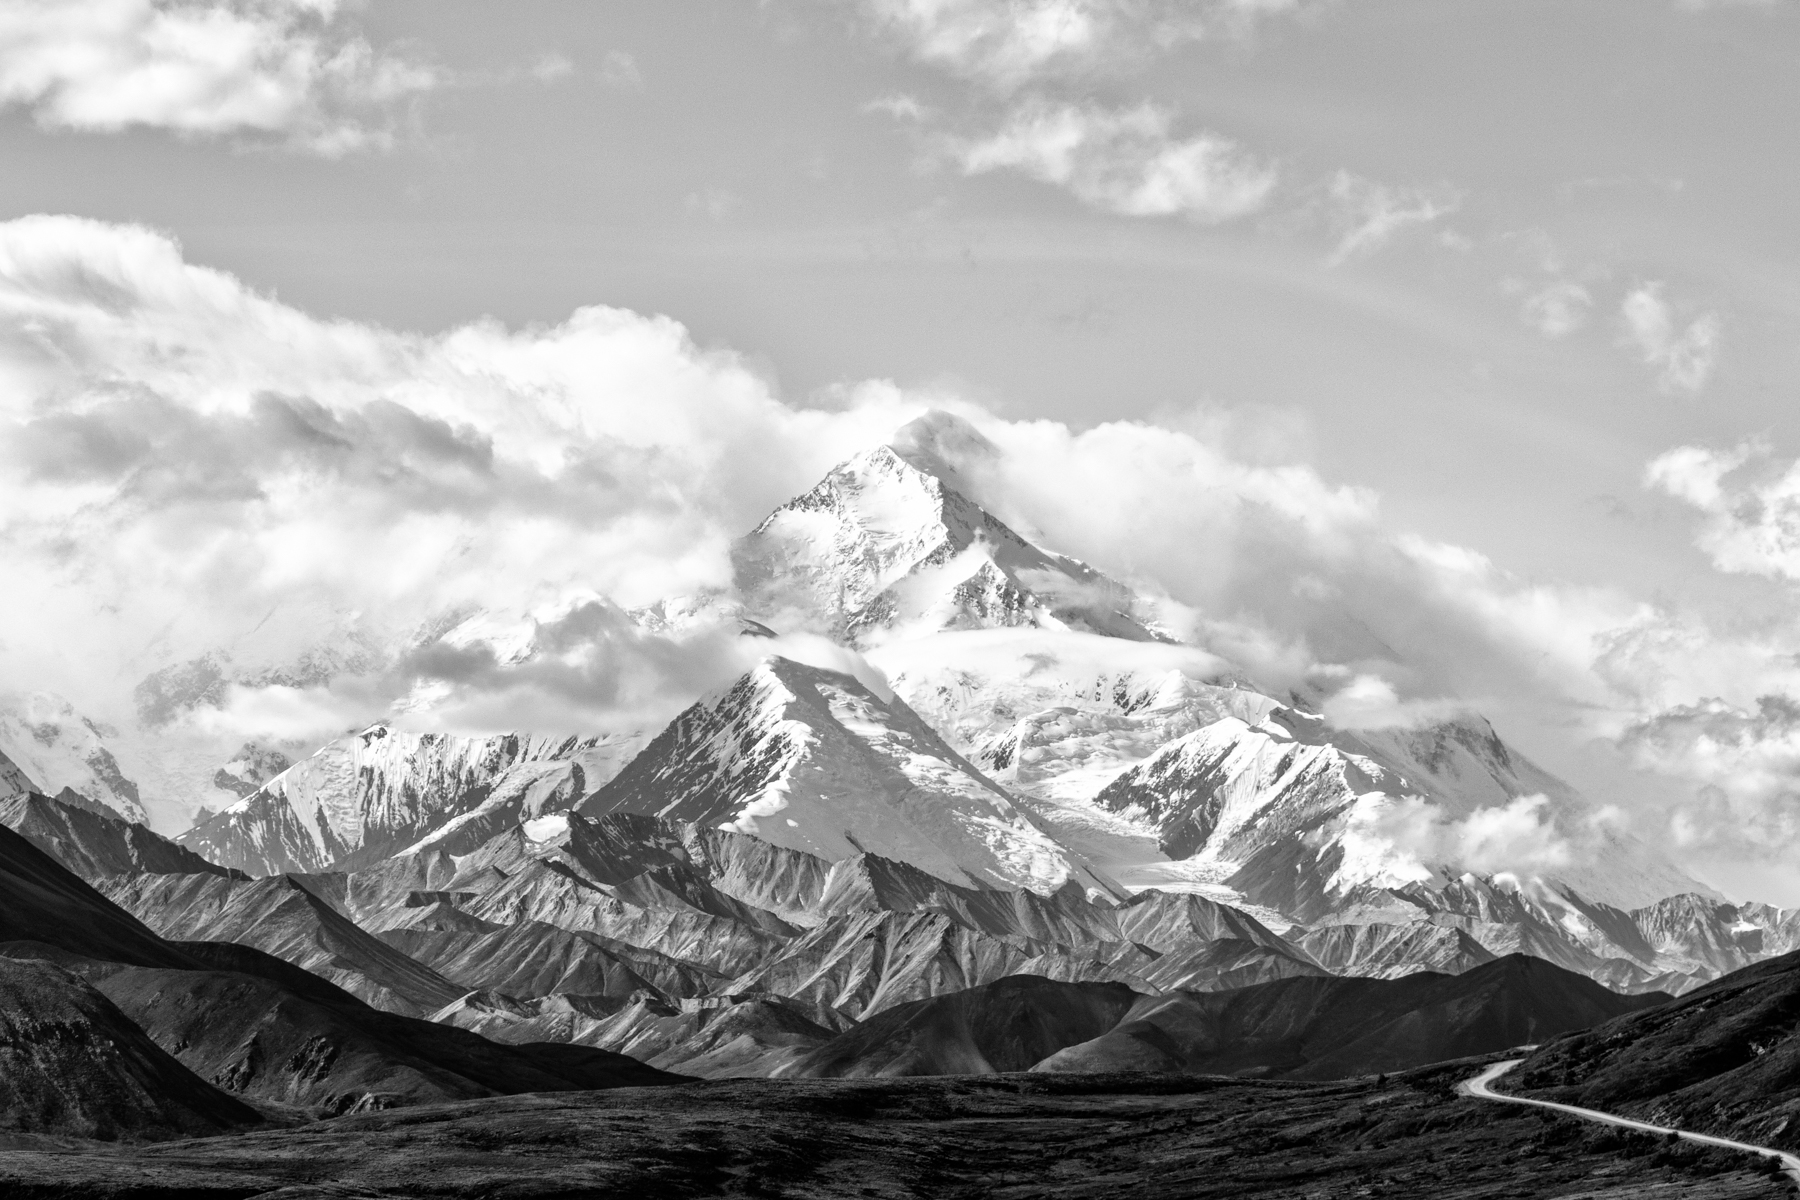 ISO 160 * 75mm * f/8.0 [Panasonic GX1 + 14-140mm]    Denali, Denali National Park, AK  - The trip that cemented my love of travel & photography, despite a camera casualty!